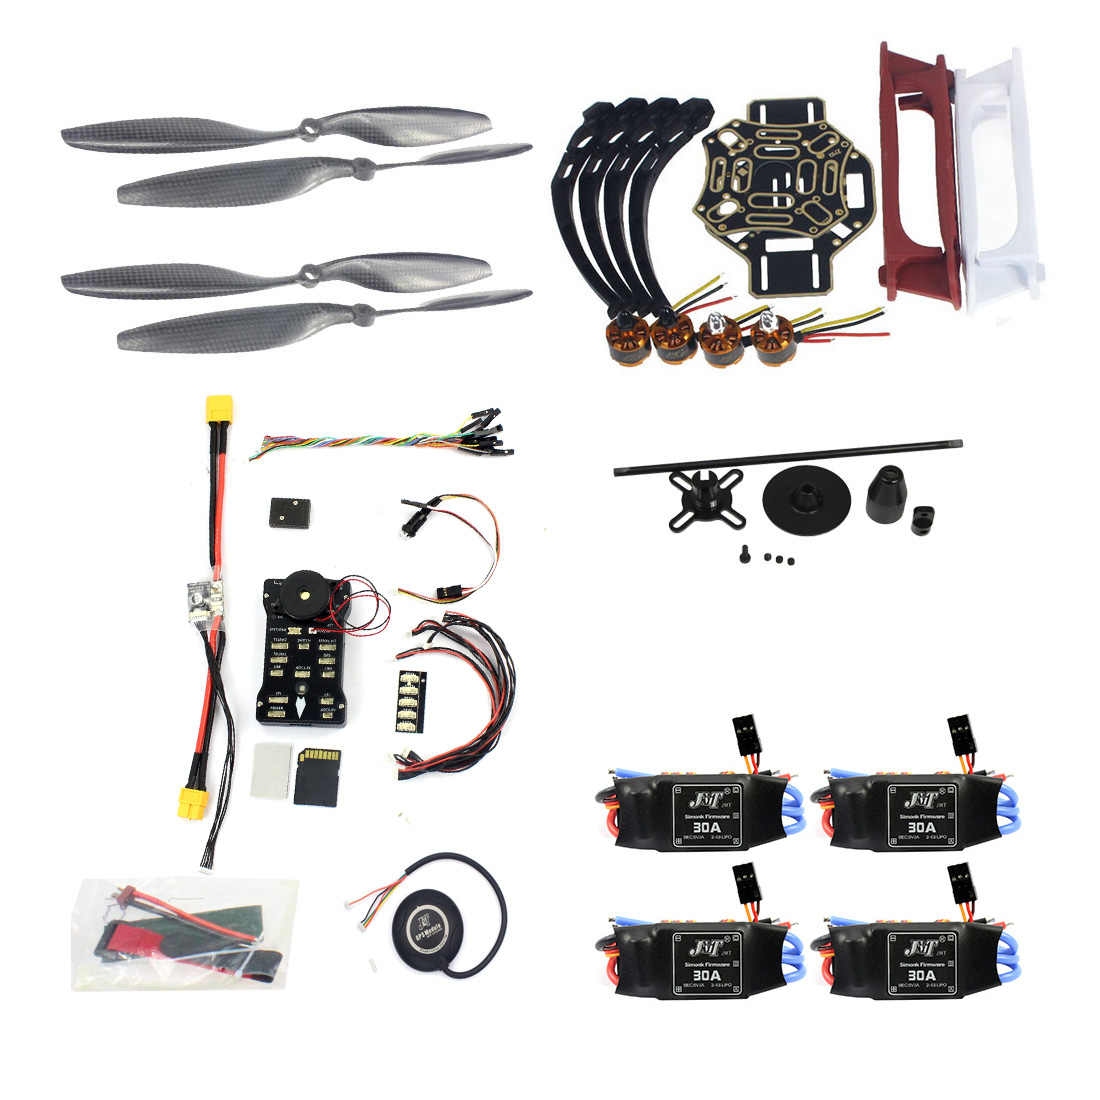 F02192 AD DIY FPV Drone Quadcopter 4 axle Aircraft Kit F450 450 Frame PXI PX4 Flight